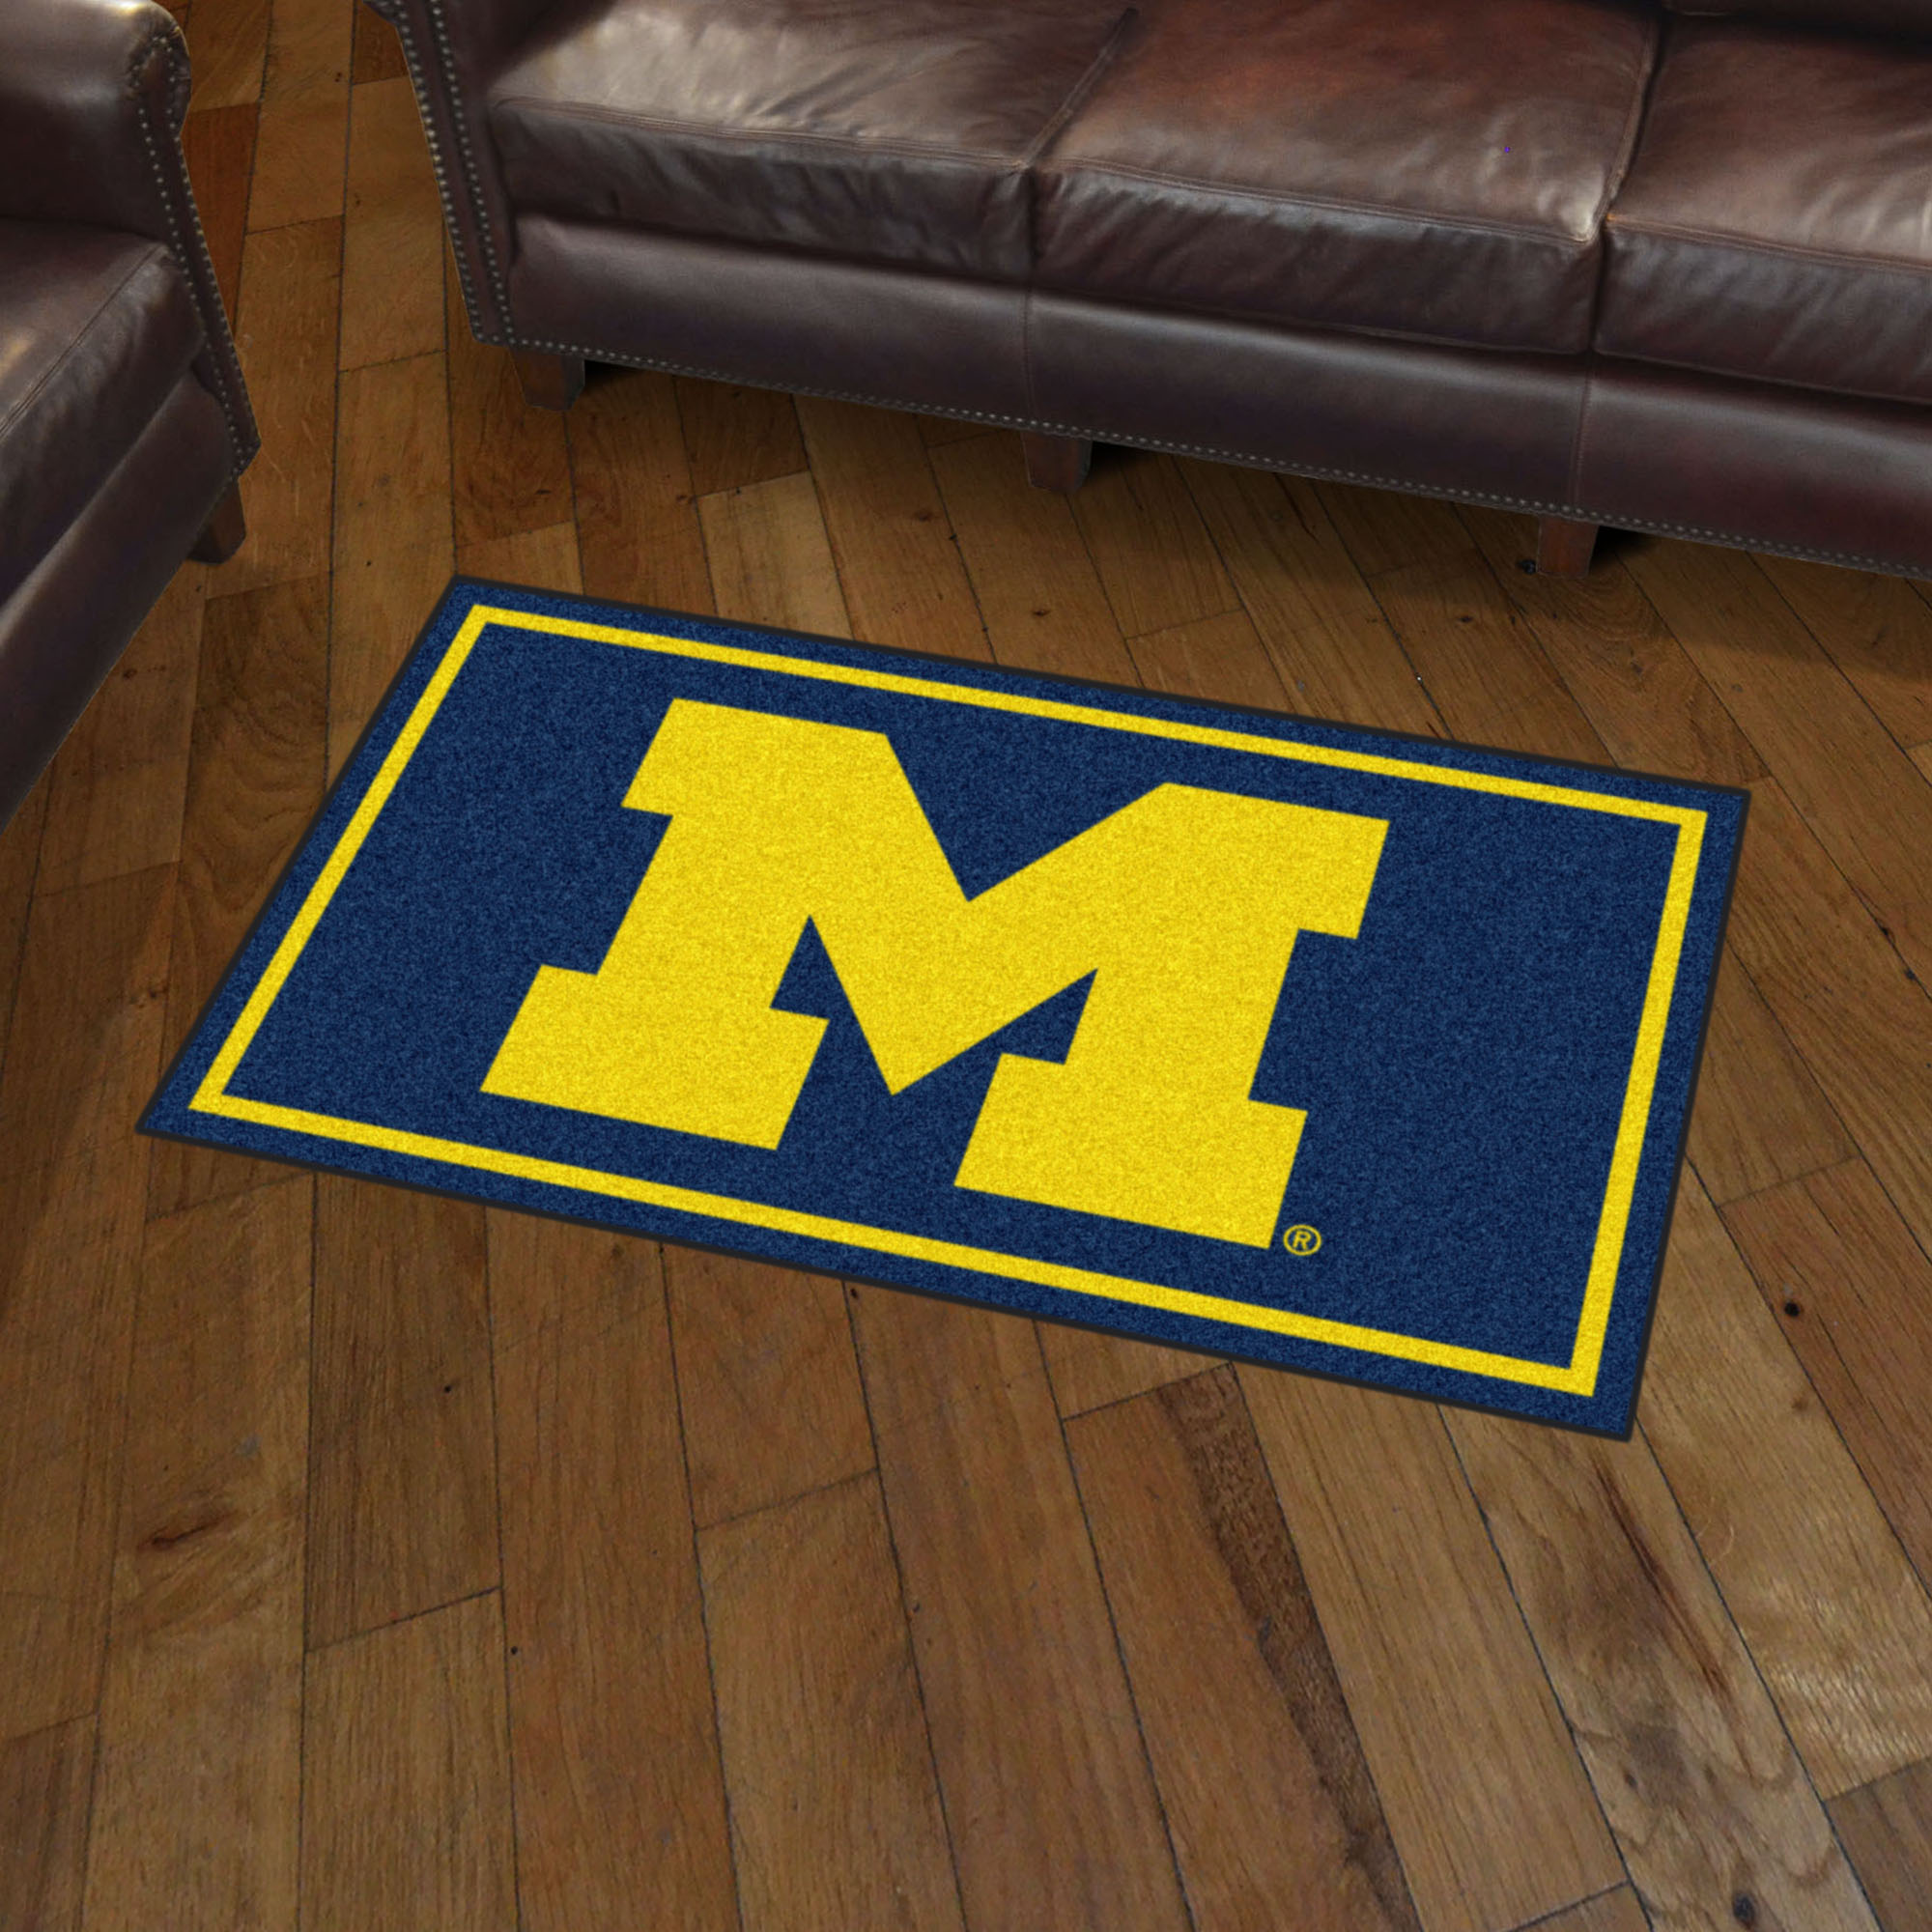 Fanmats Seattle Seahawks 3 Ft X 6 Ft Football Field: Michigan Wolverines 3x5 Area Rug